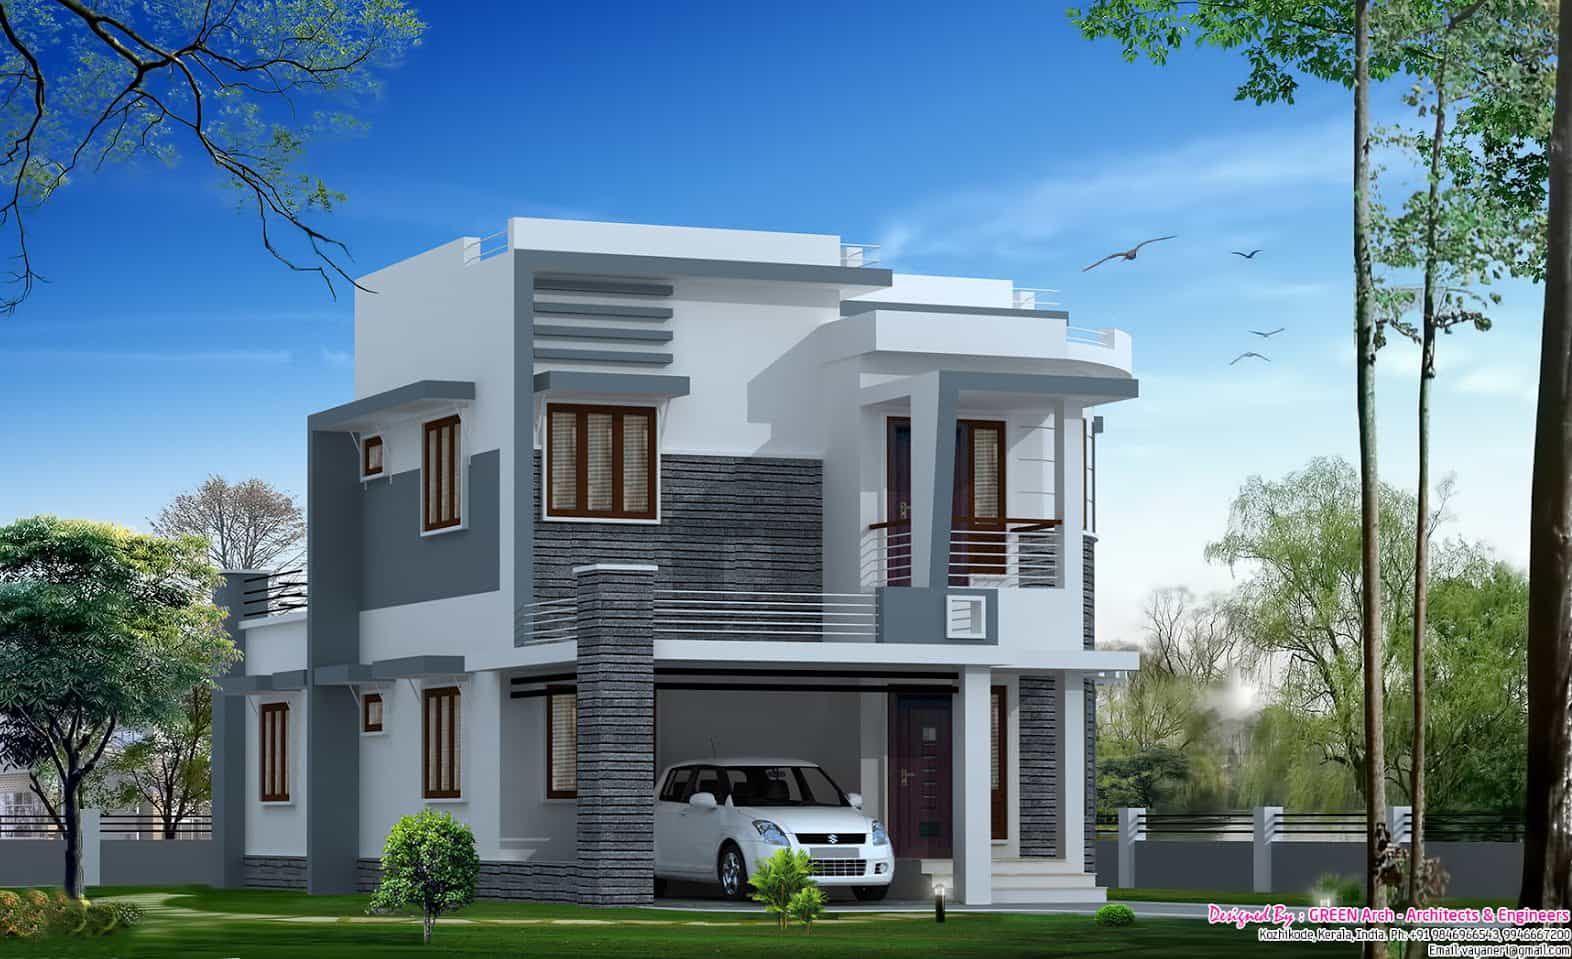 Modern villa design at 1650 House and home designs